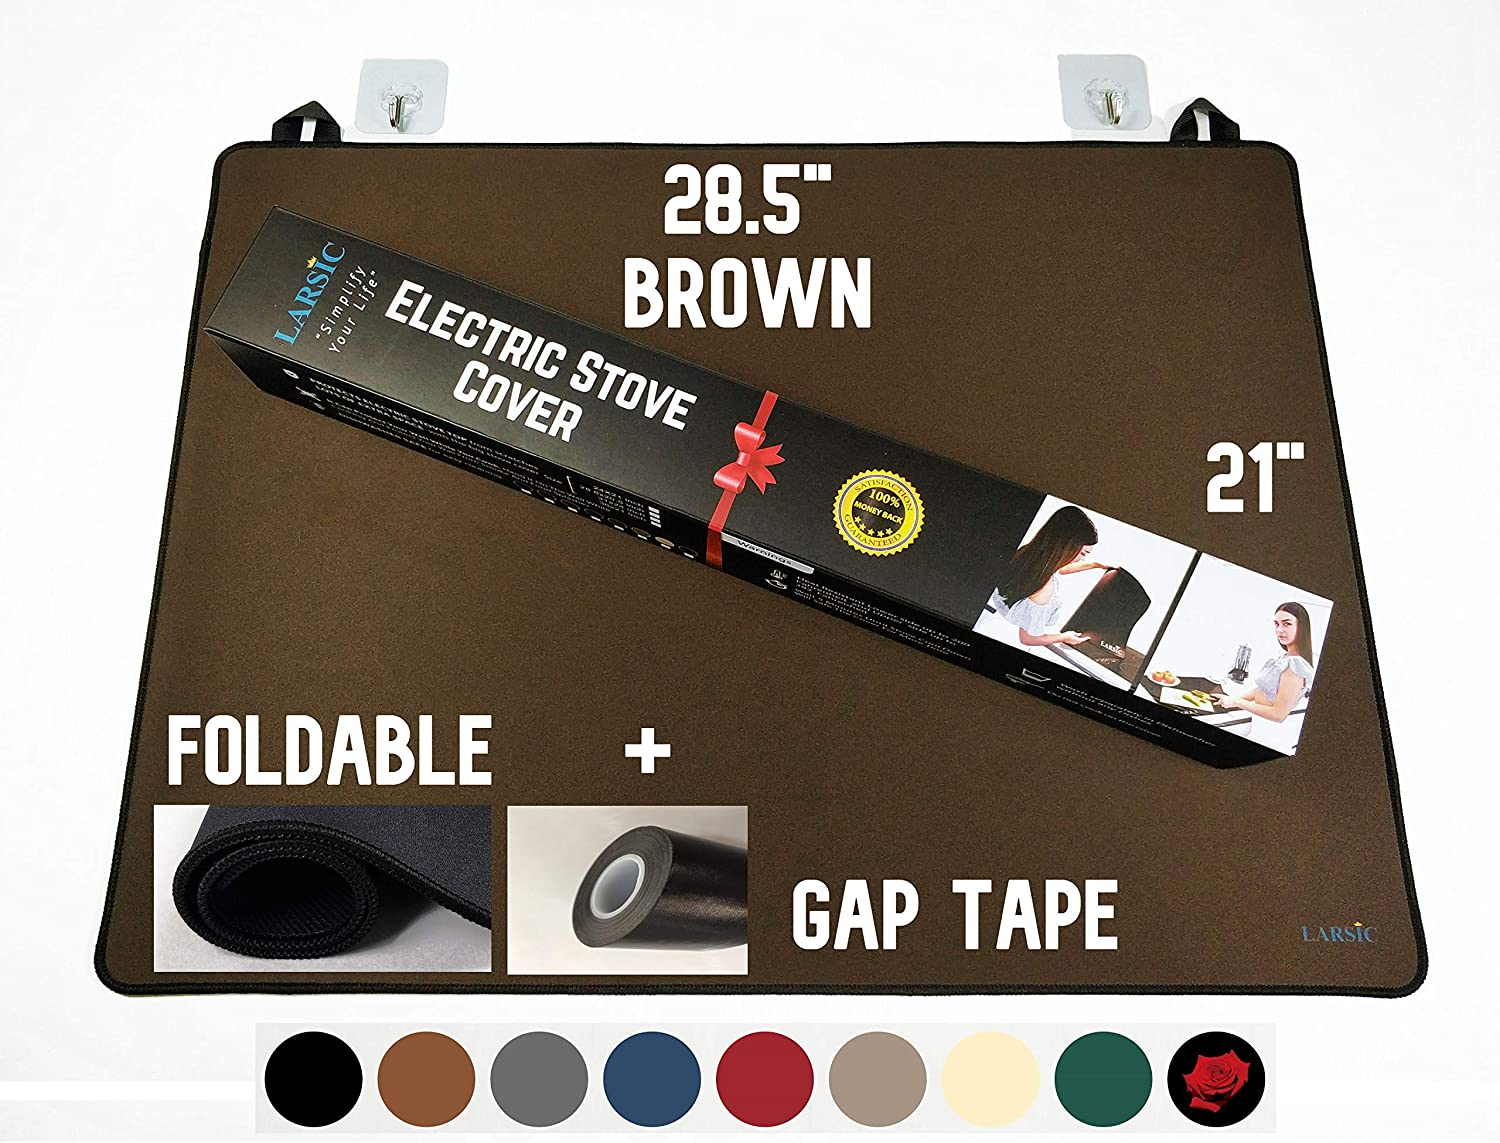 Foldable Stove Cover - Protects Electric Stove Washer Dryer Top. Anti-Slip Coating Waterproof Stove Gap Foldable Prevent Scratching, Expands Usable Space (28.5X20.5, Brown)